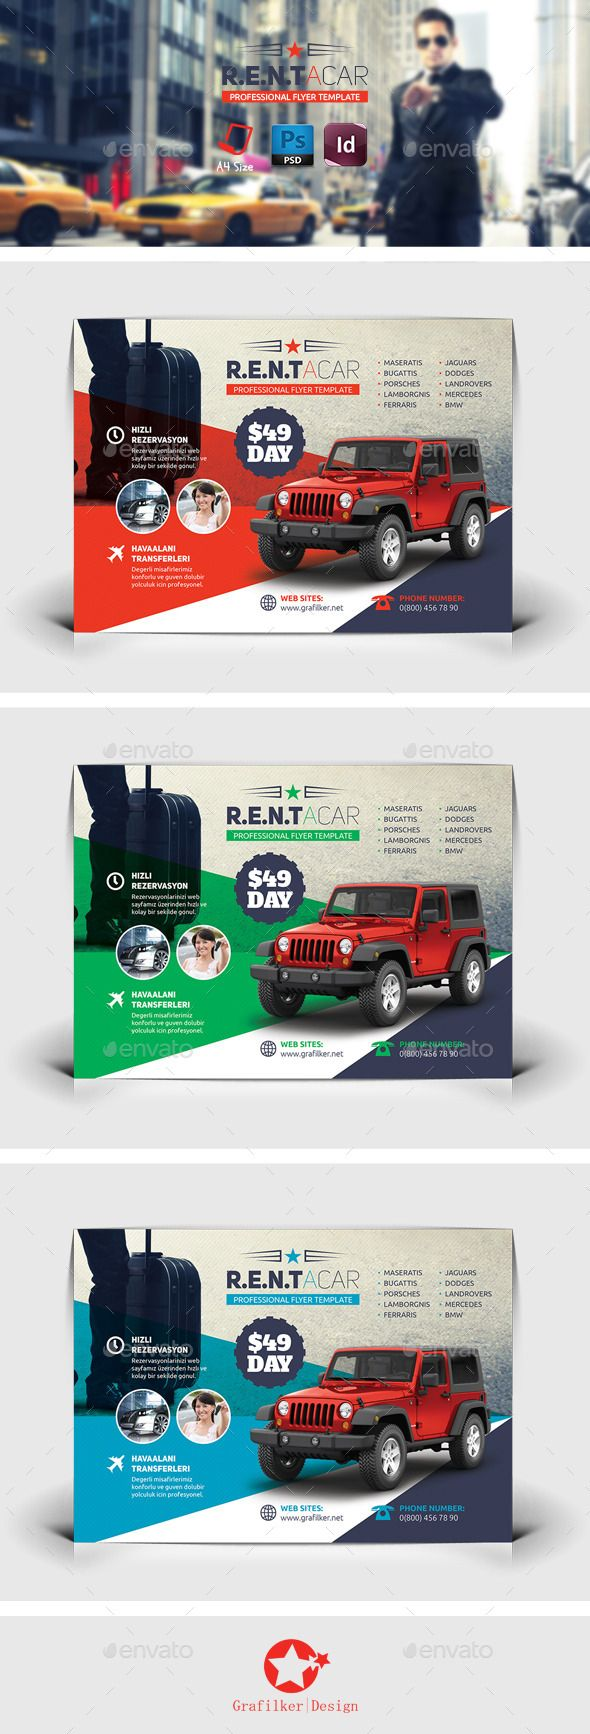 rent a car flyer templates cars flyer template and flyers rent a car flyer template psd buy and graphicriver